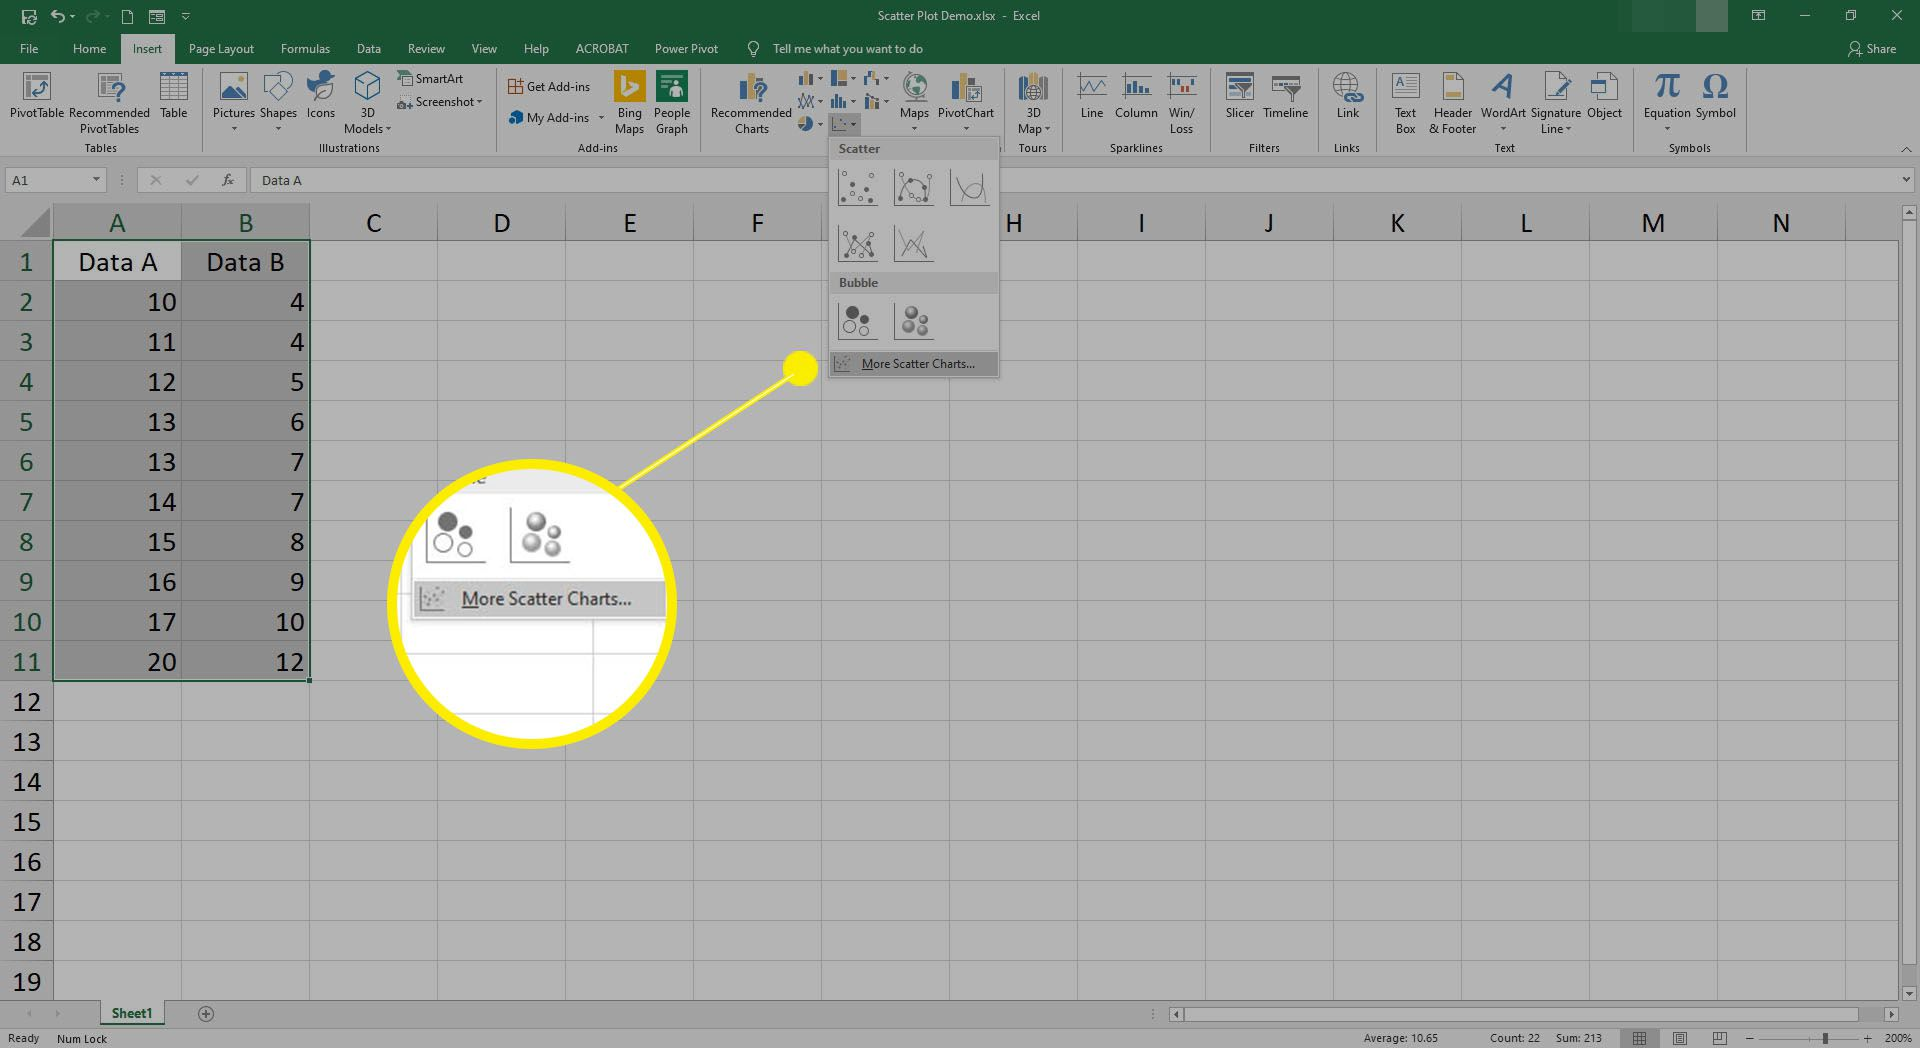 Screenshot of Scatter plot icon selected, cursor over More Scatter Charts menu item.